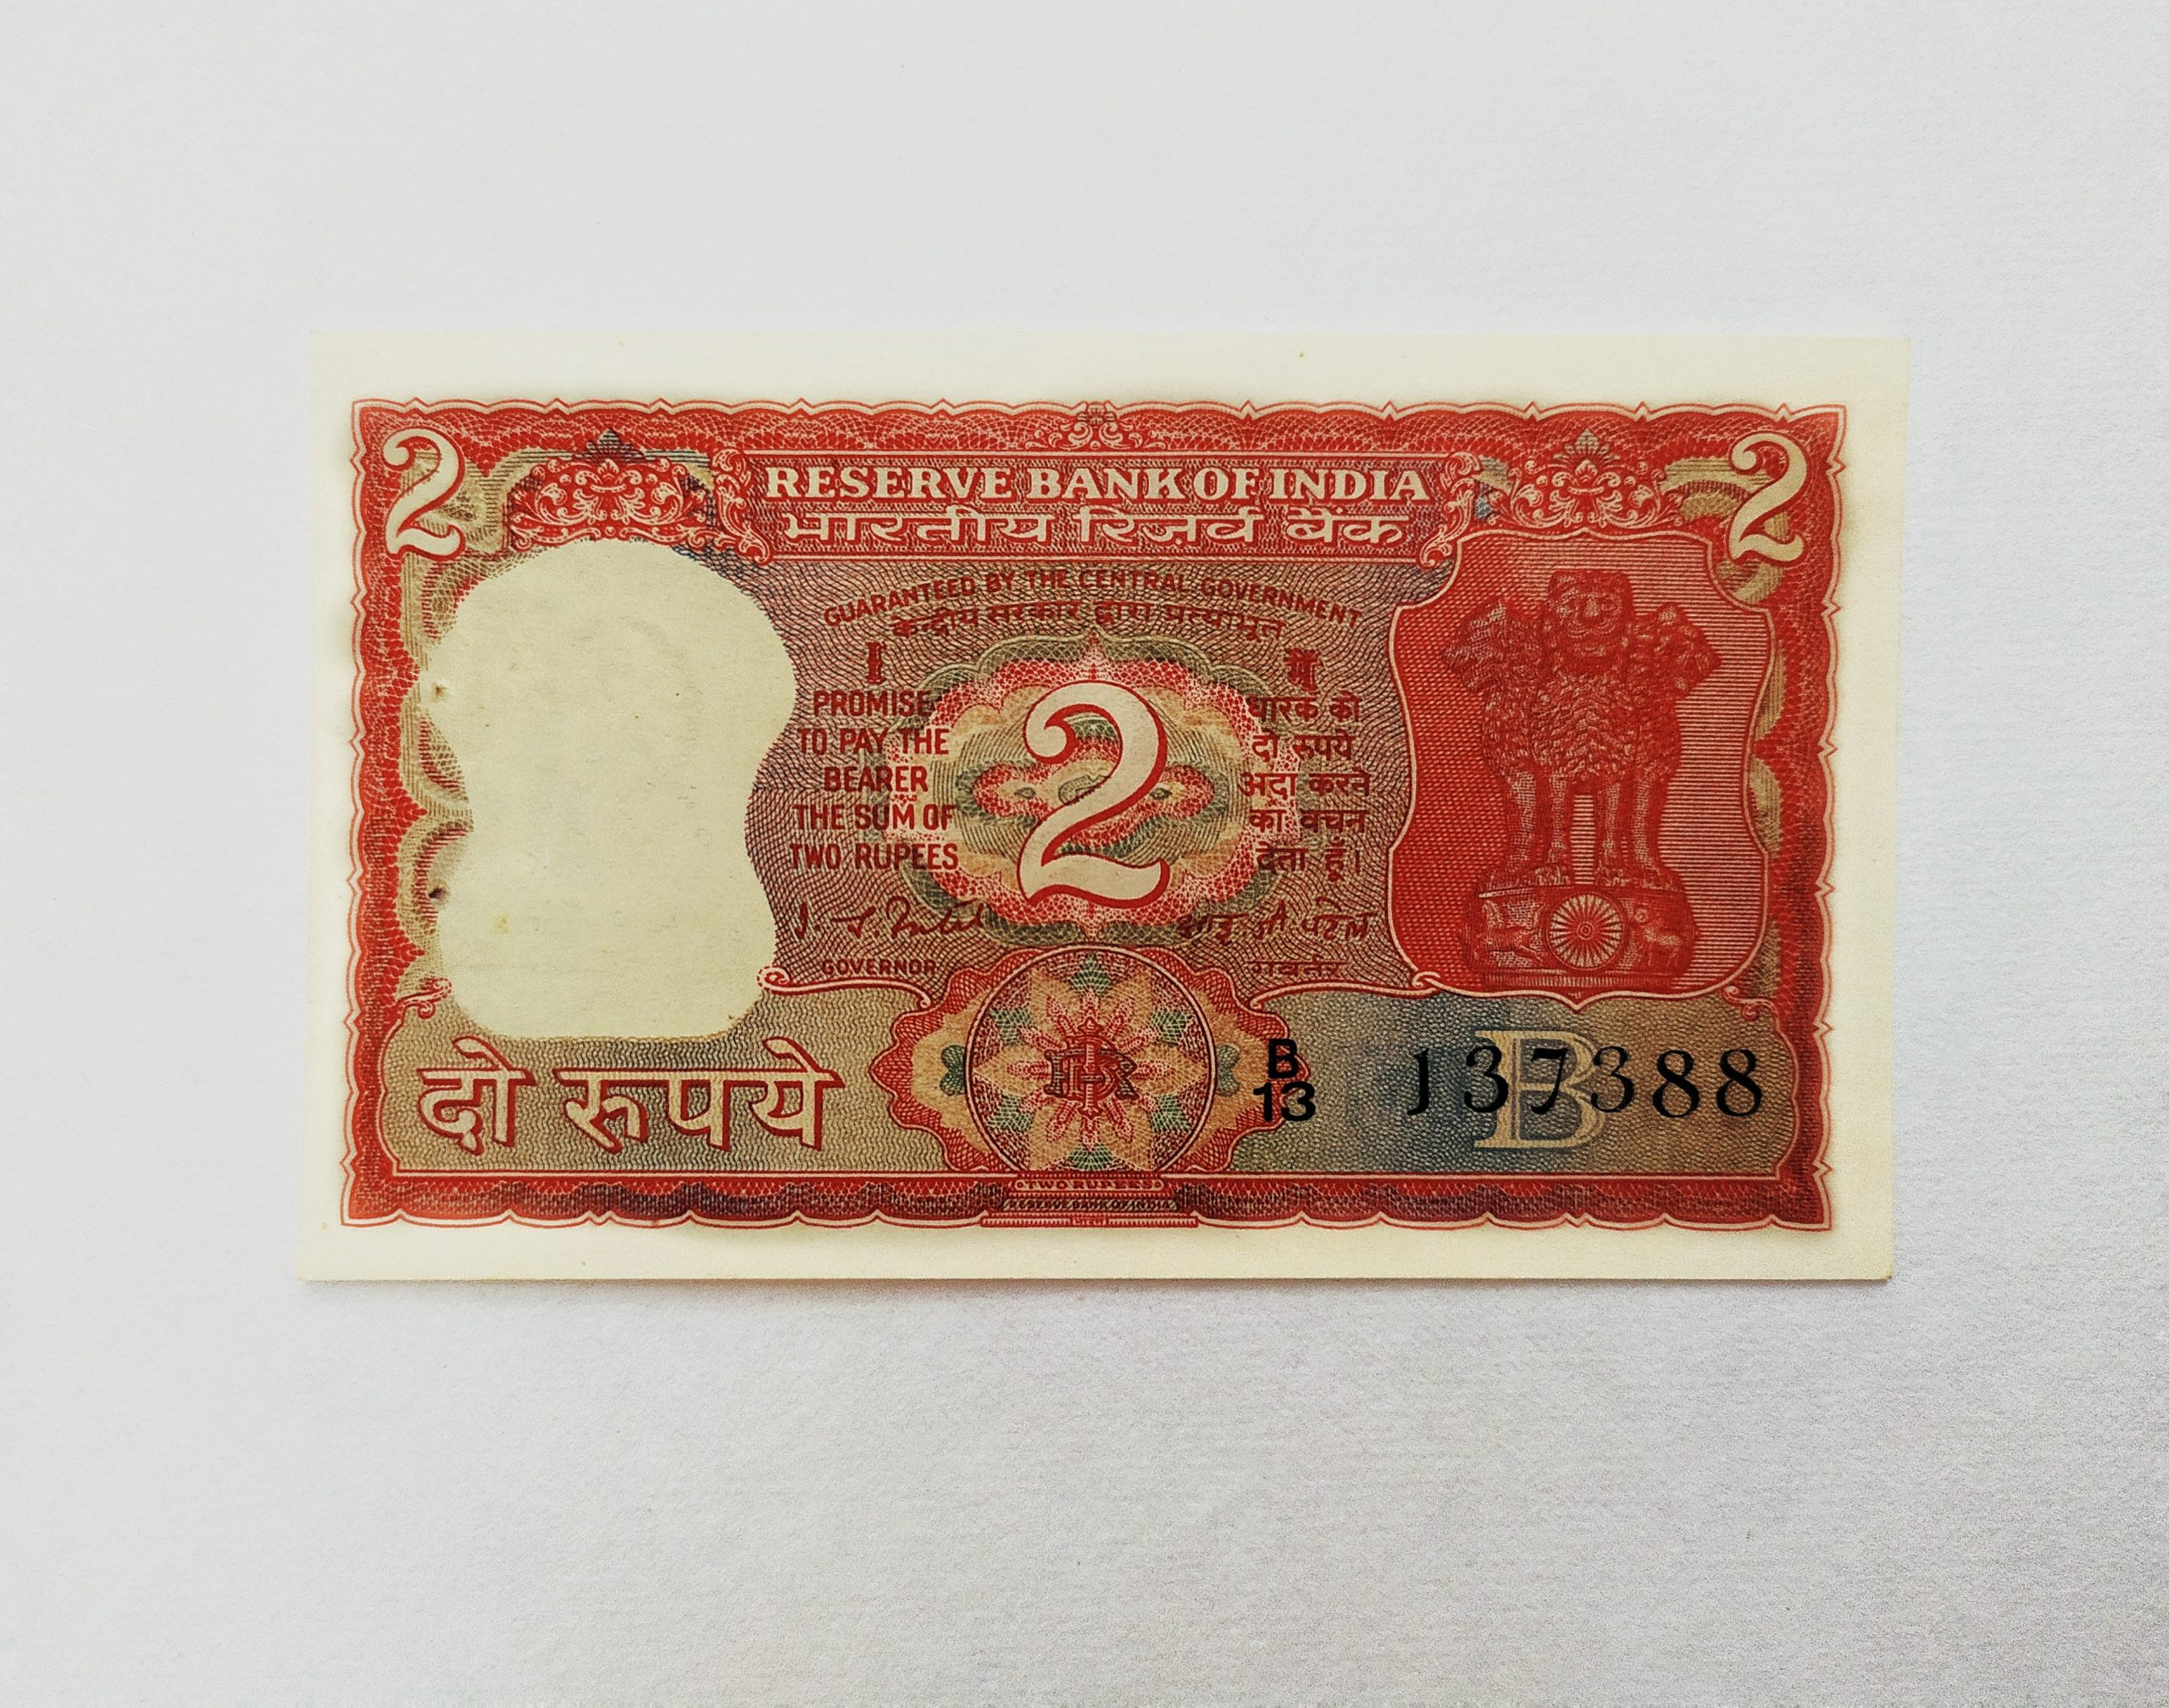 2 rupees note